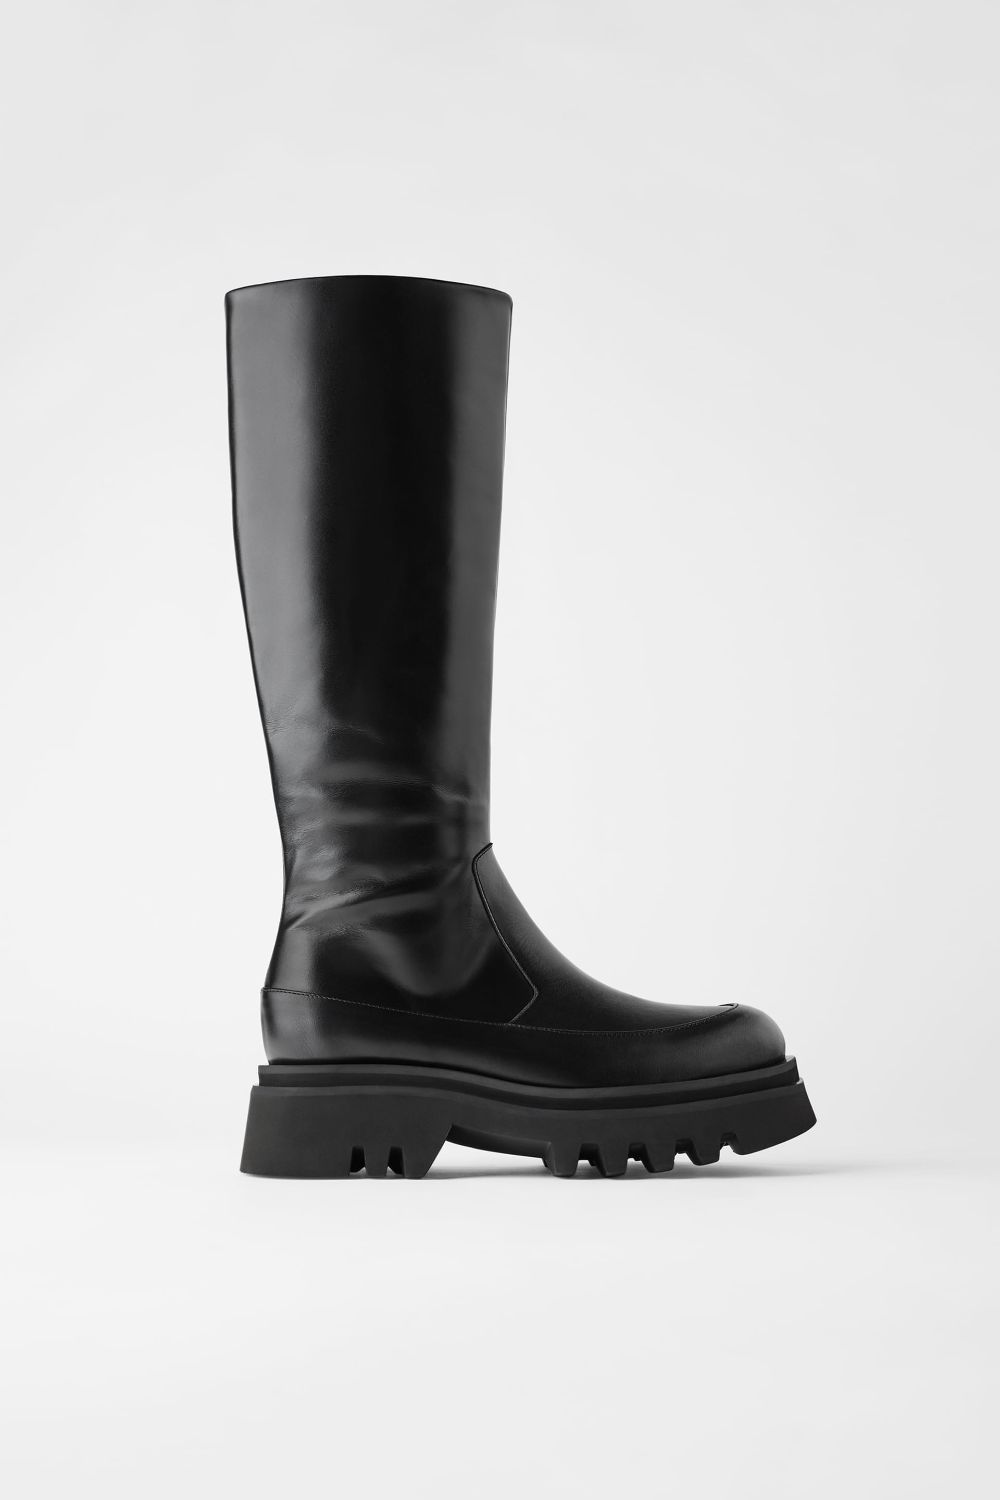 LEATHER BOOTS WITH TRACK SOLE | ZARA United Kingdom